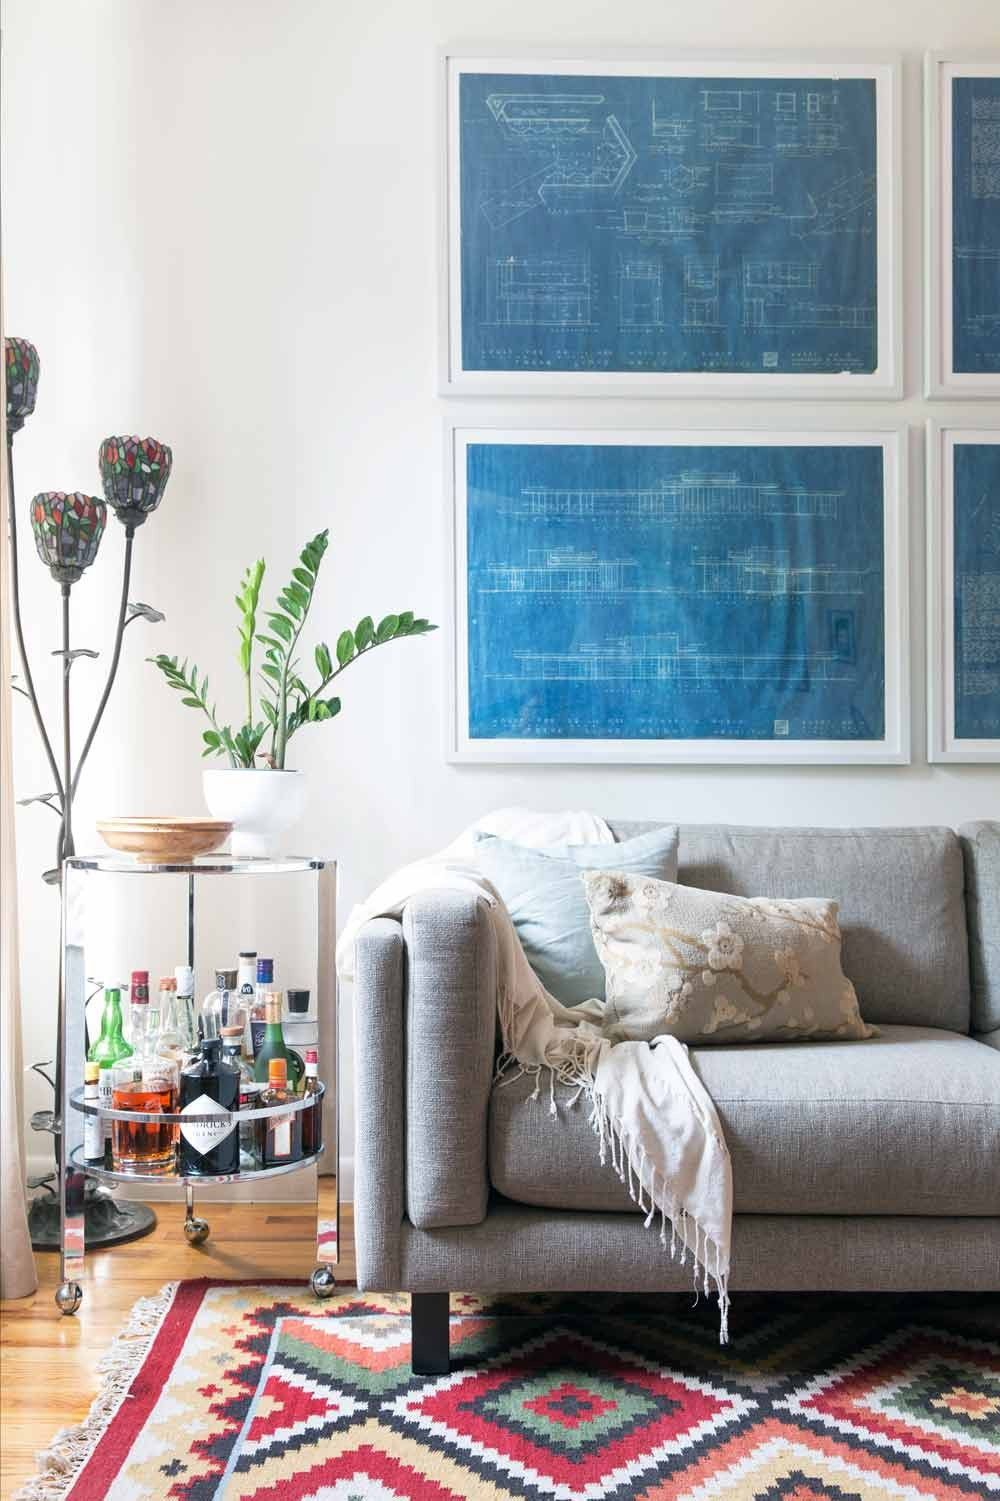 Decorate with what you have 9 things you may already own that architectural blueprints as wall art above couch and side table with plant malvernweather Choice Image